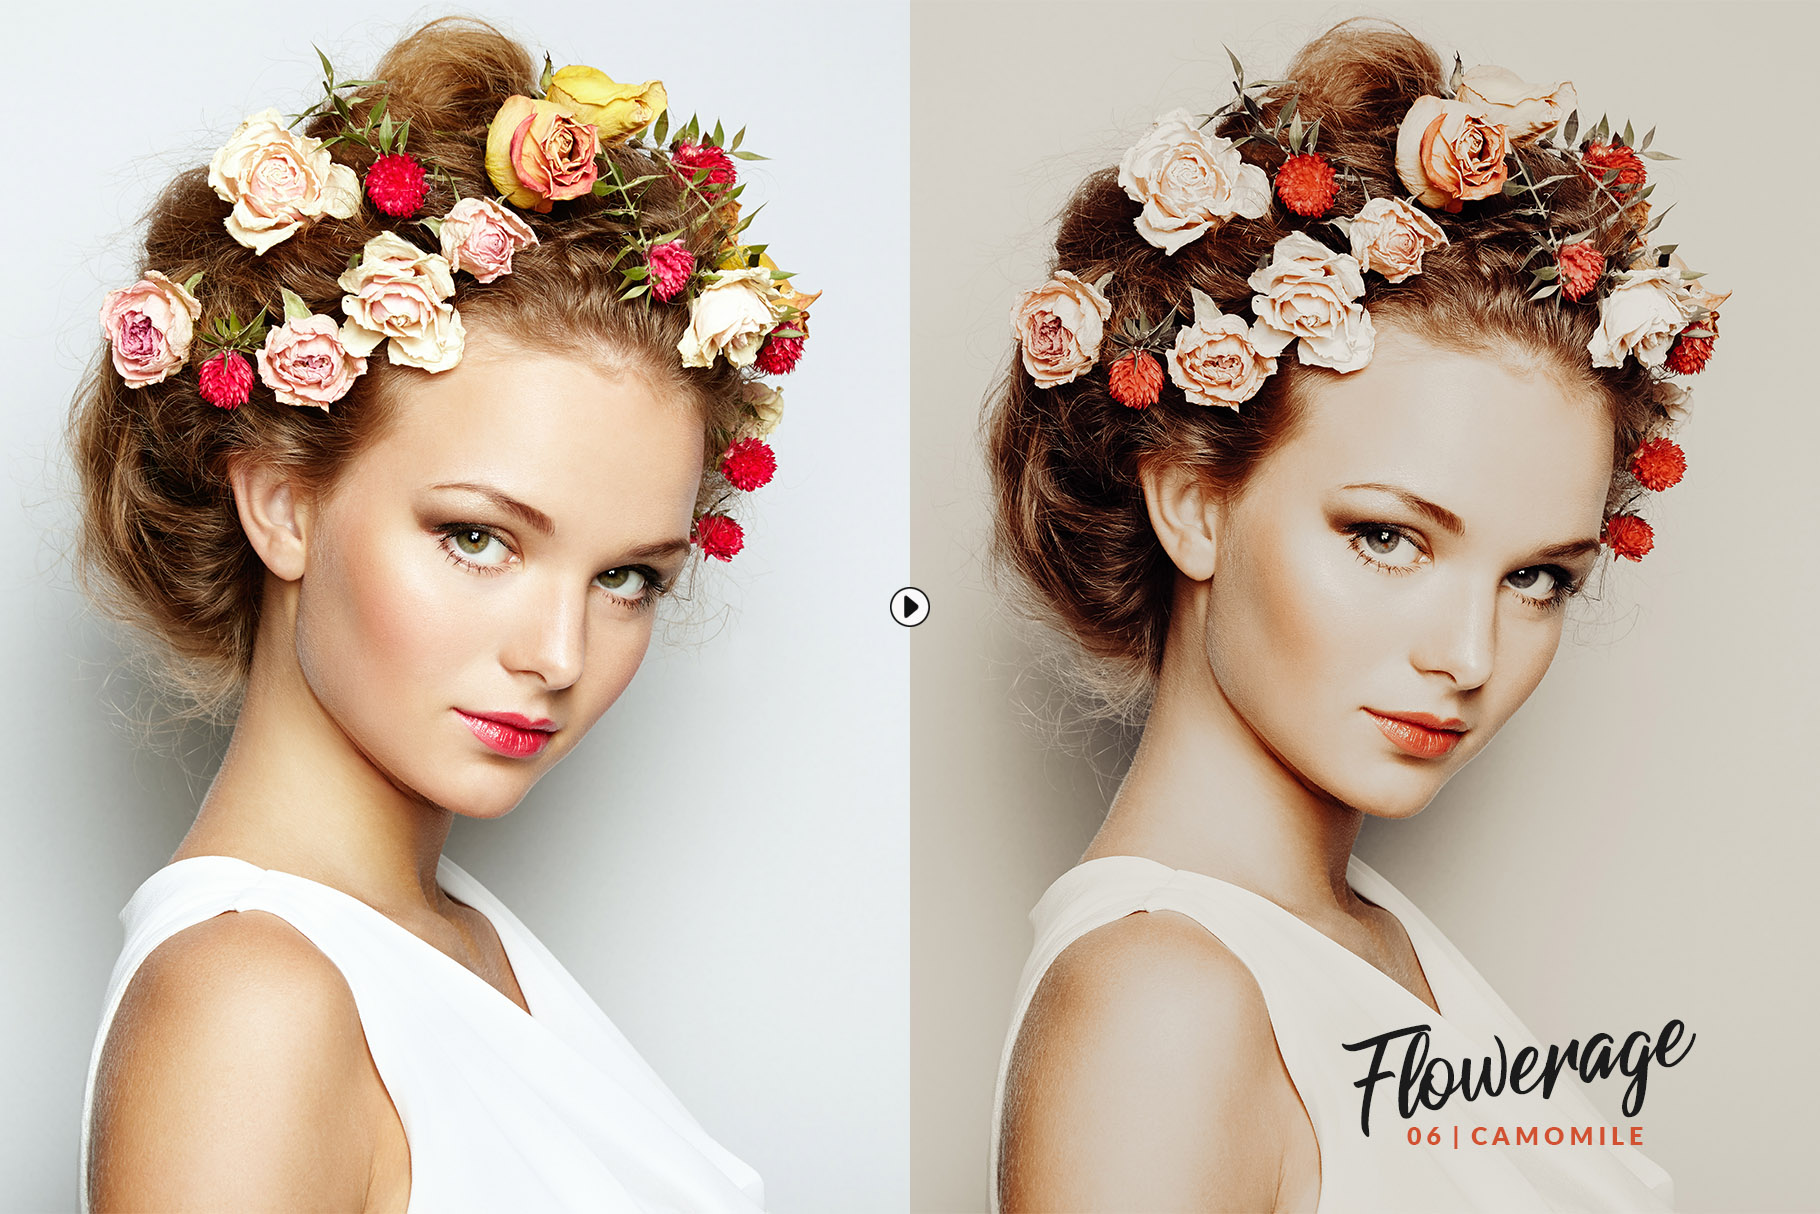 Flowerage_preview_01_pro